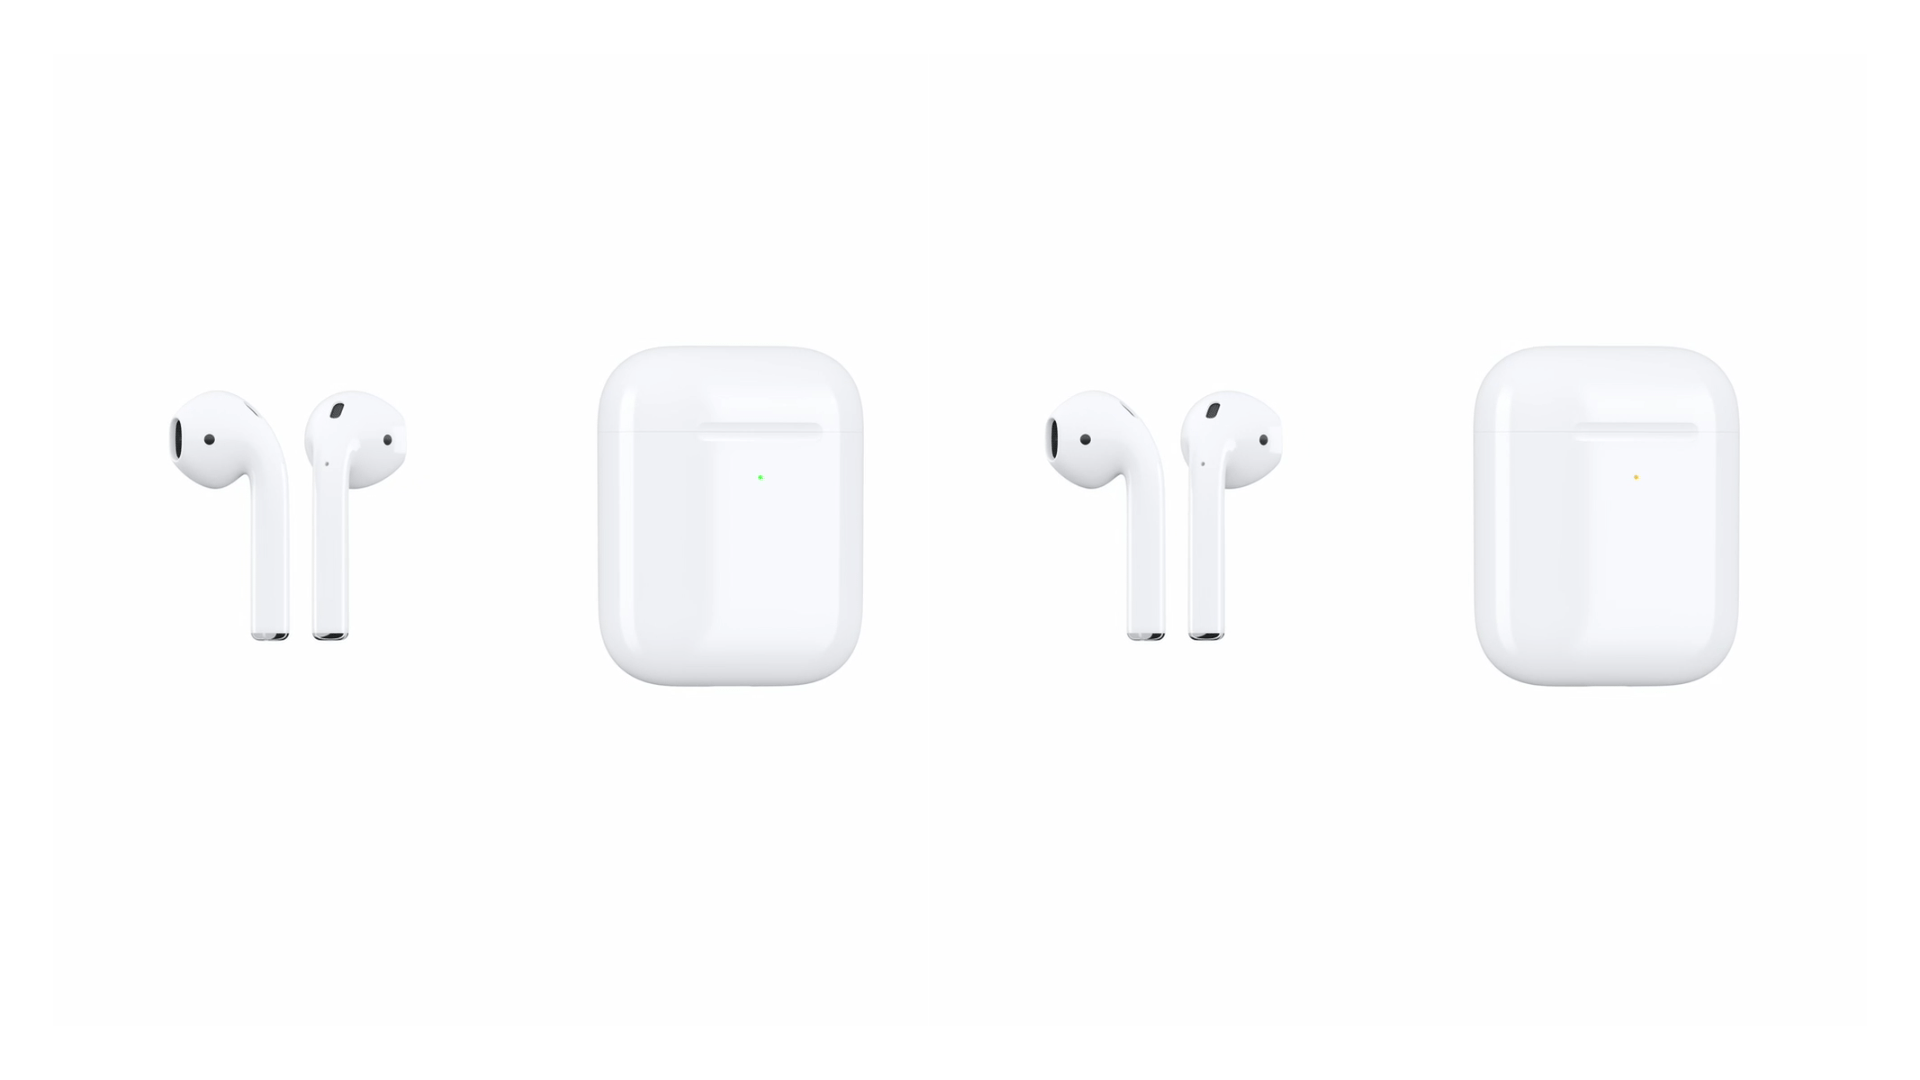 How to charge AirPods on the Apple Watch